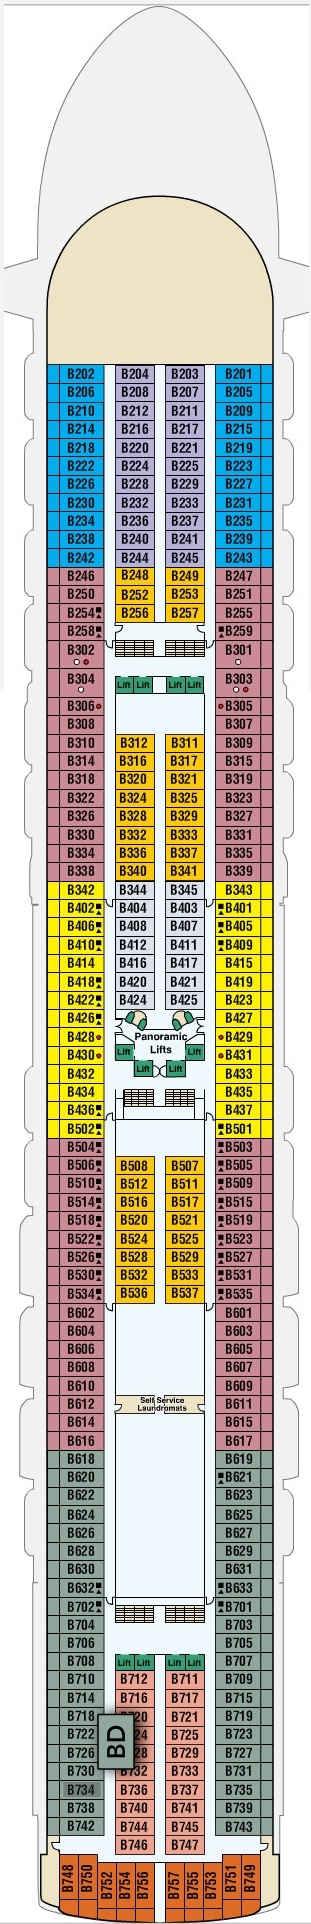 Ruby Princess Baja Deck 11 layout